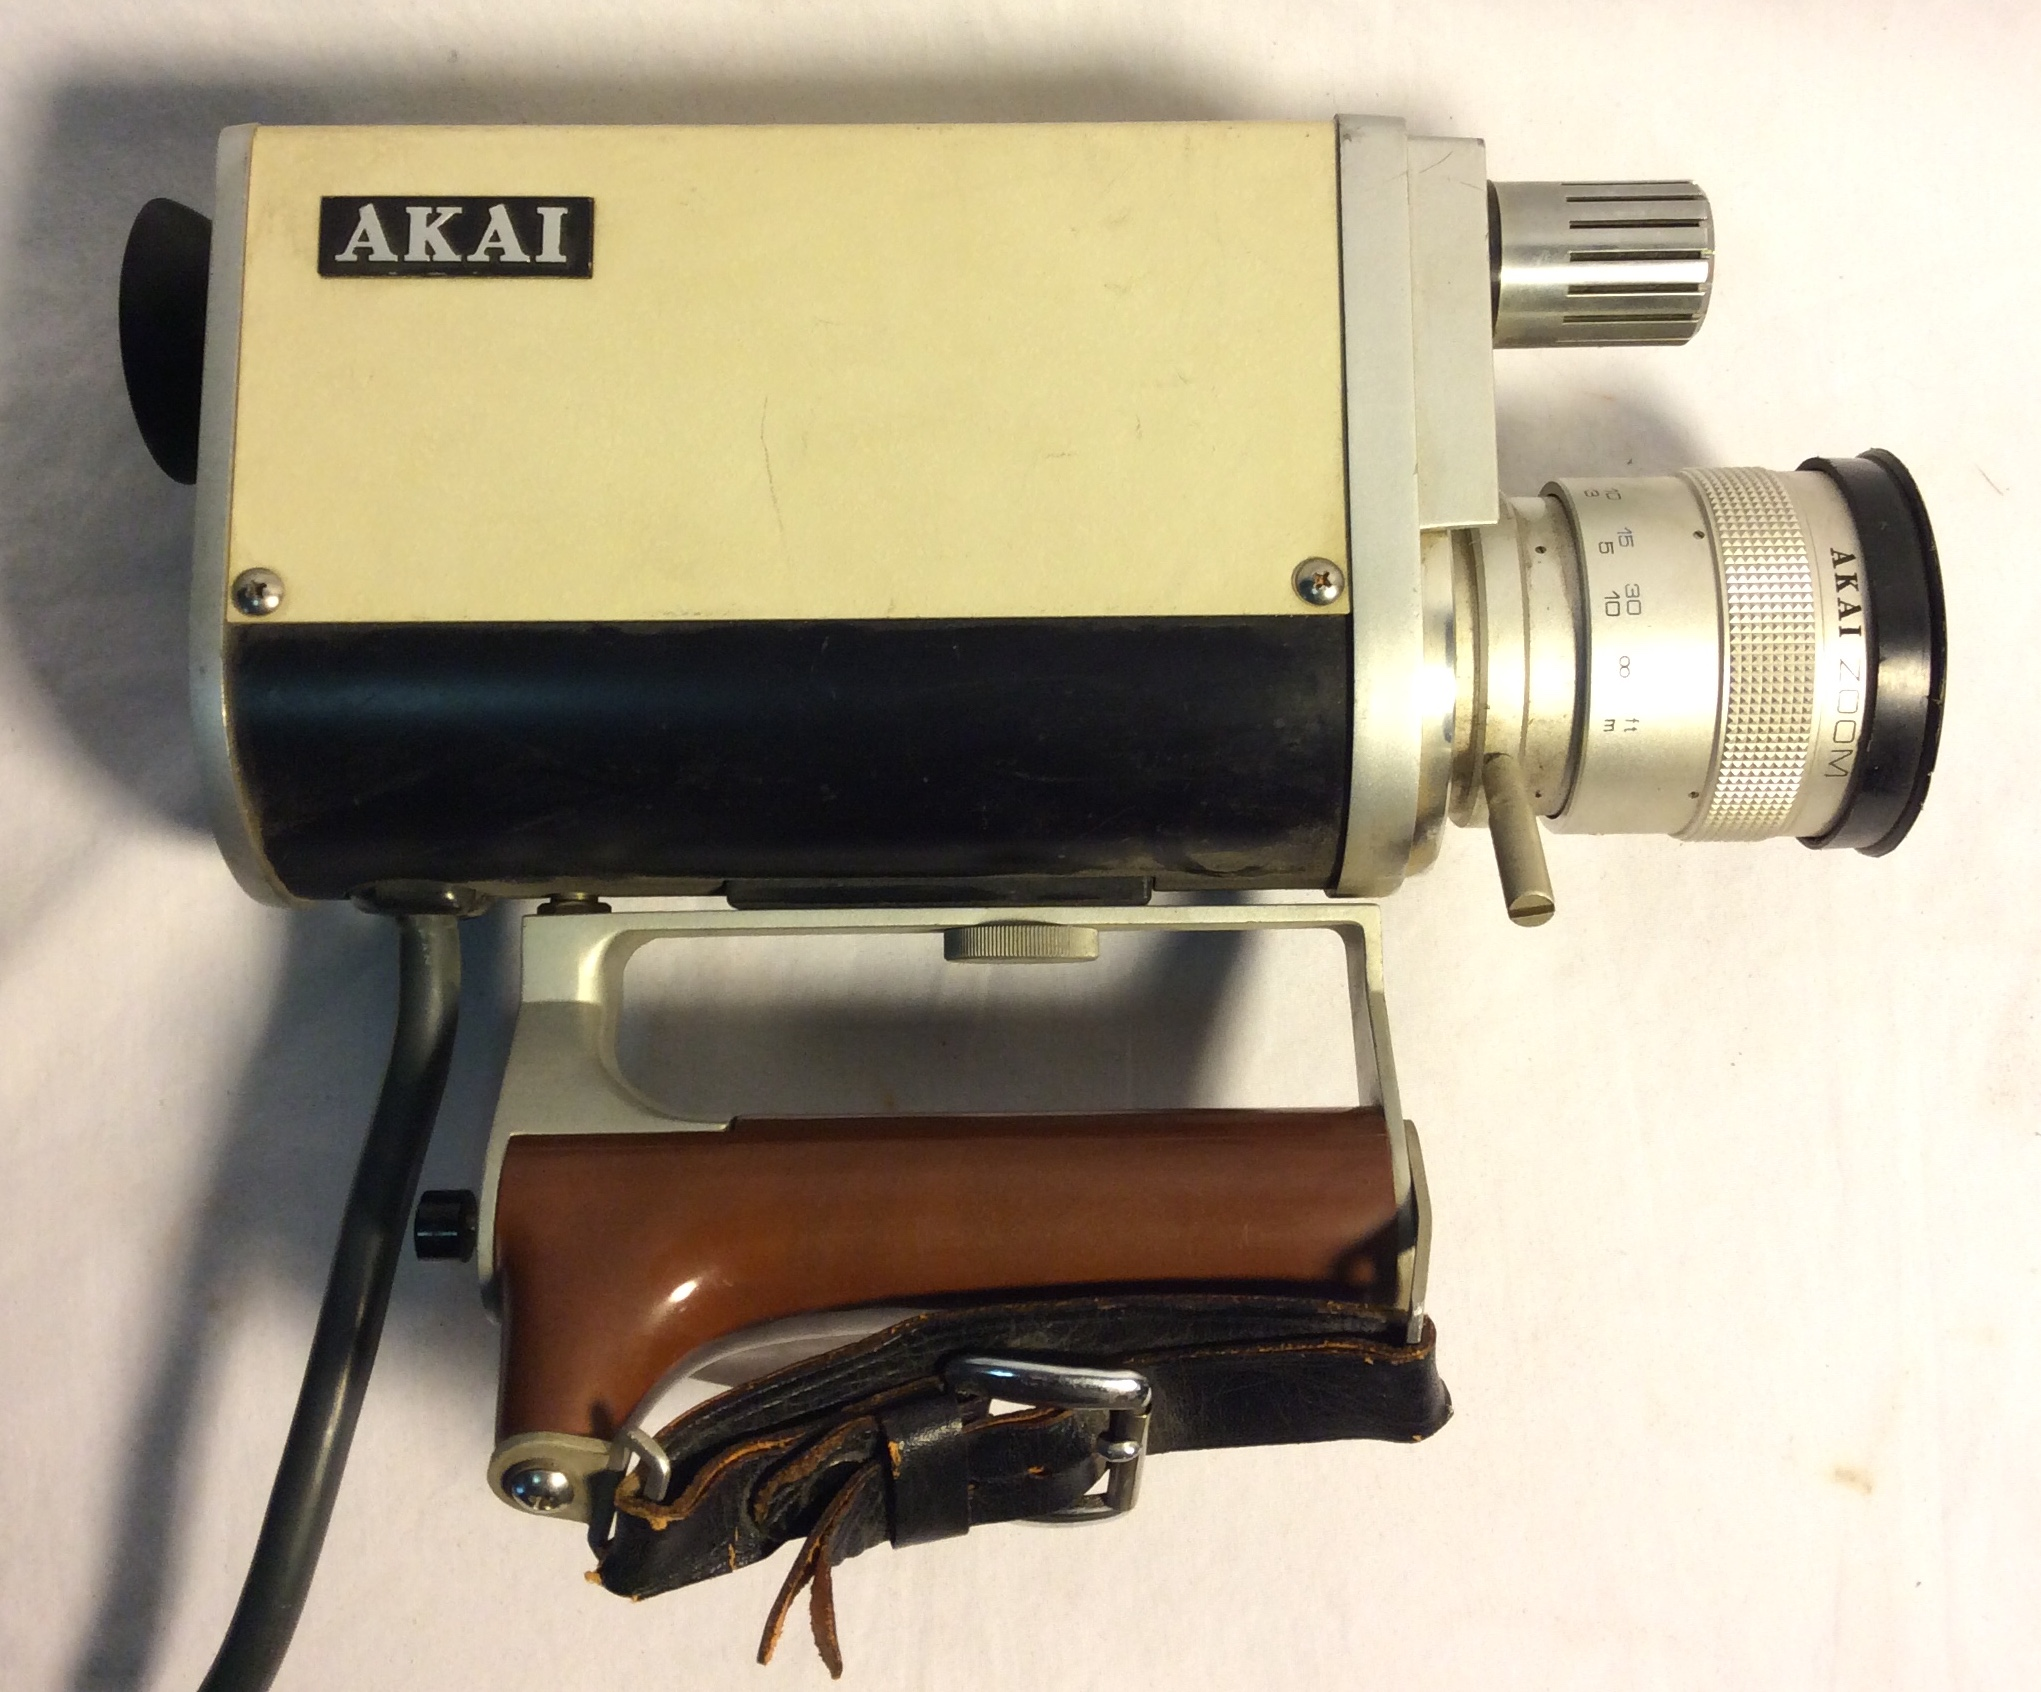 Vintage 1970's Akai VC-110S Portable Camera